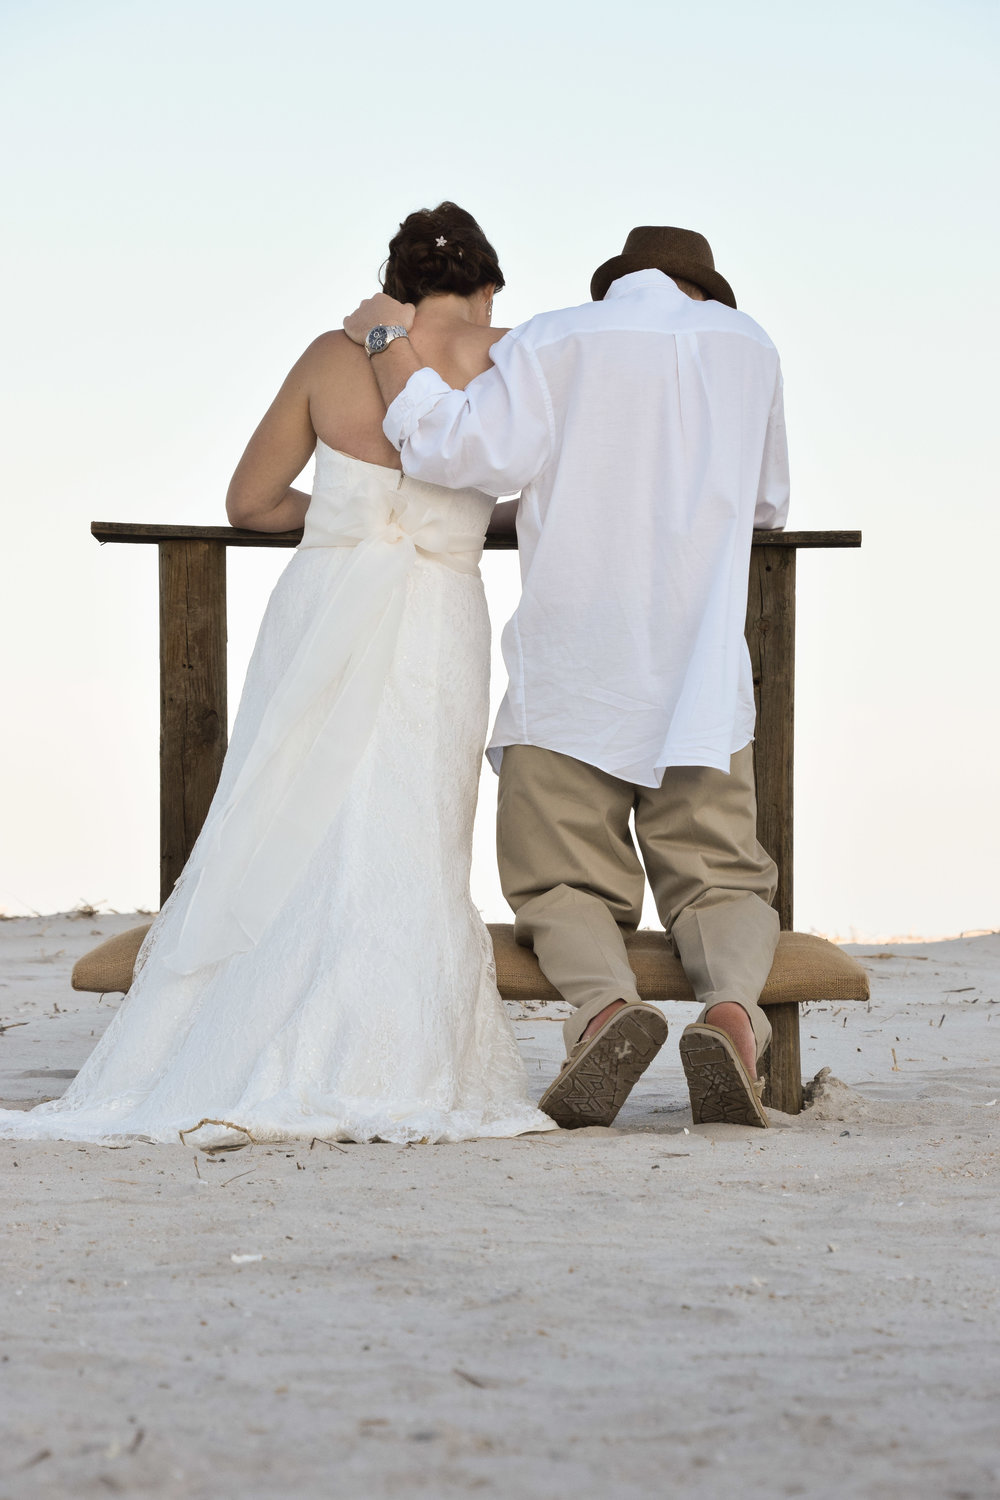 Bride and groom kneeling on the beach.